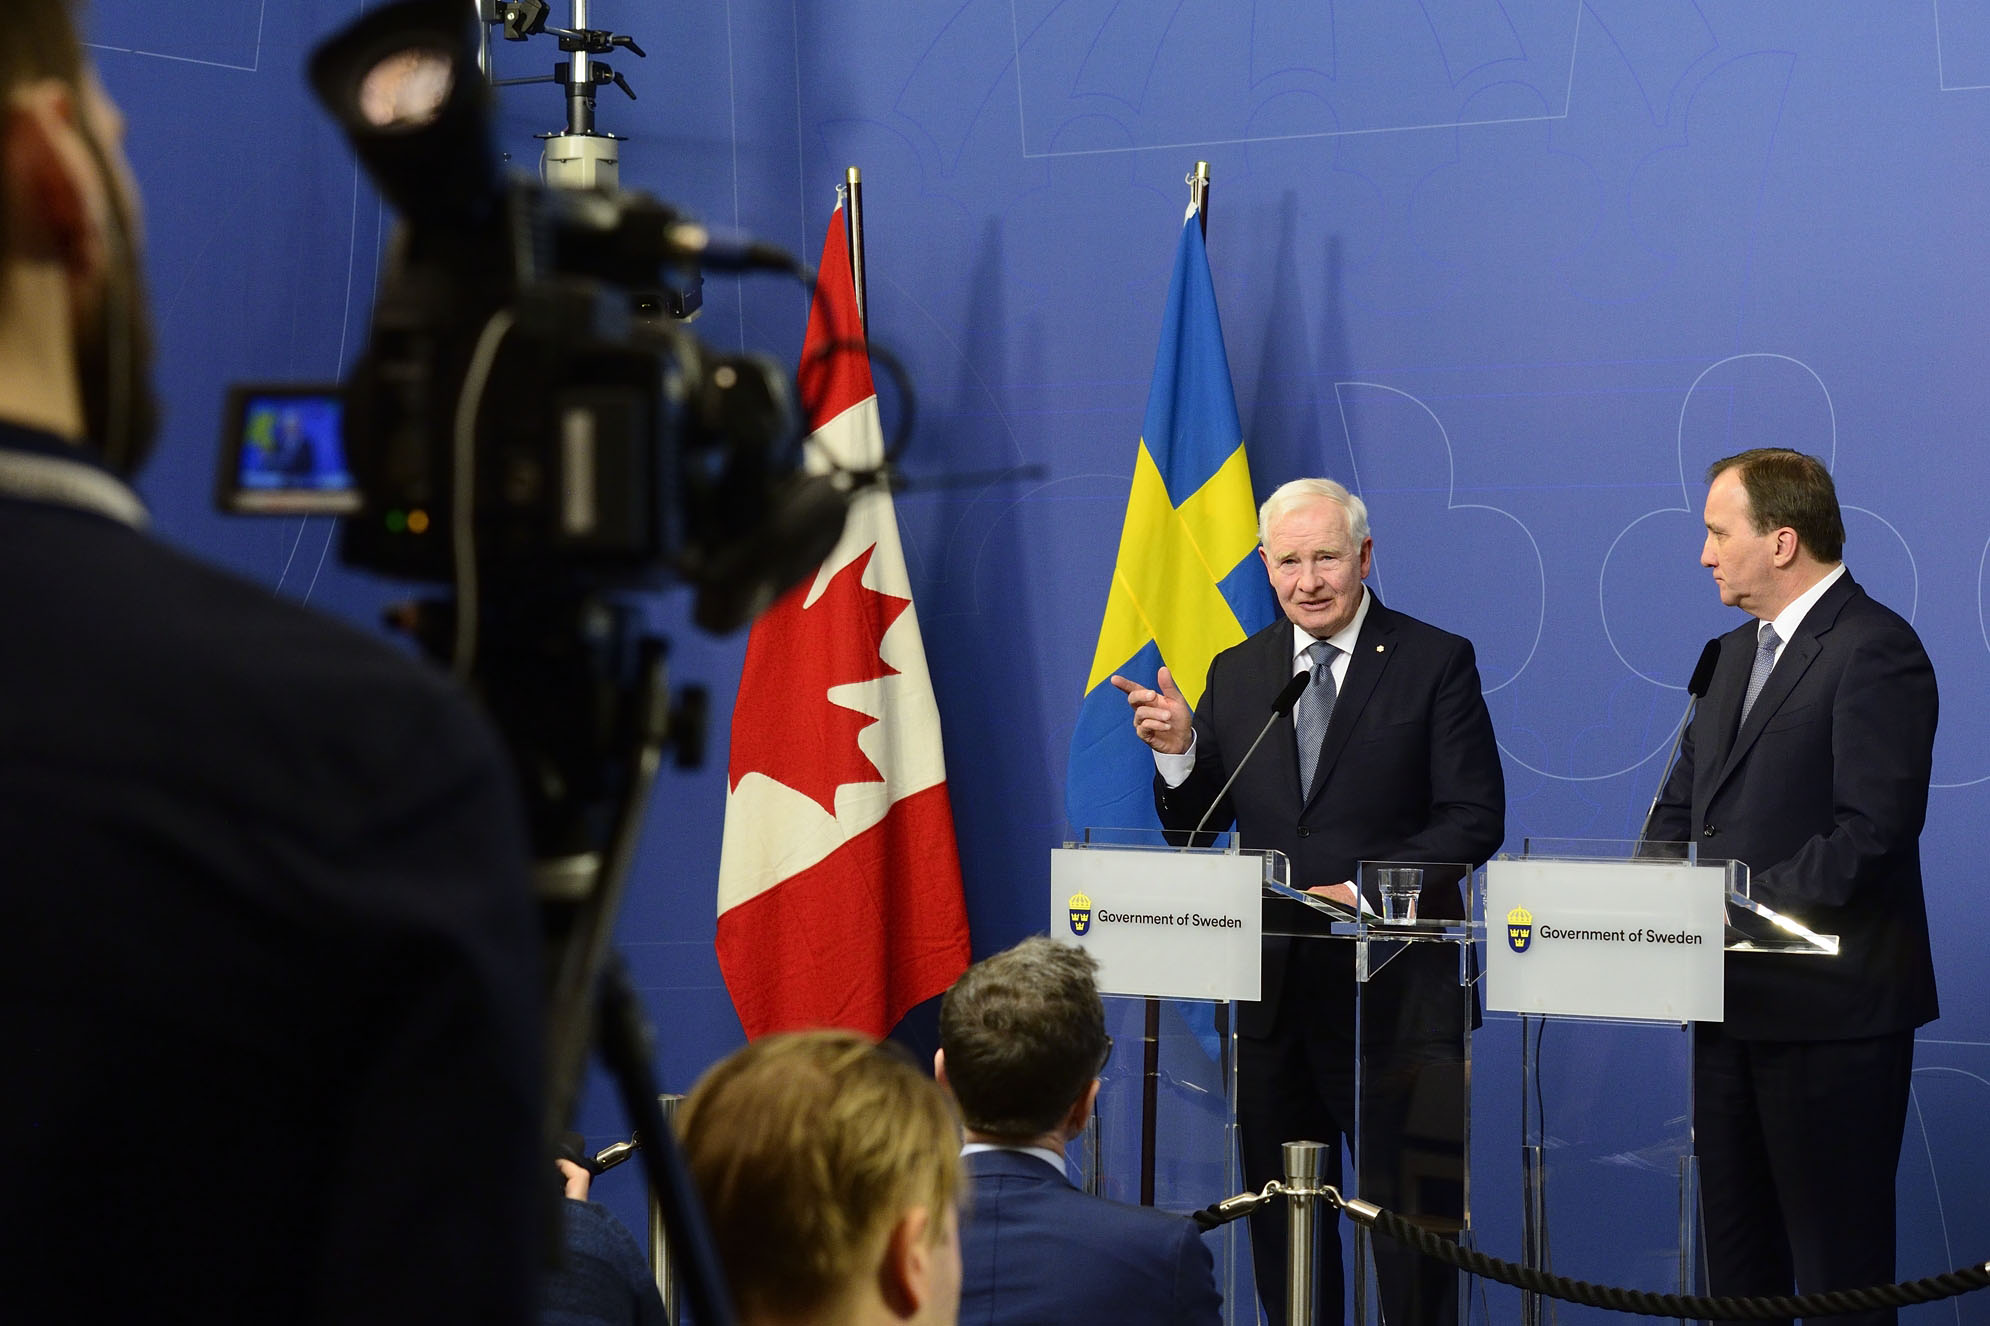 """In a rapidly changing world, the Canada-Sweden relationship matters more than ever. Areas of particular potential include research and innovation, diversity and inclusion, and sustainability and clean technology development,"" said the Governor General."